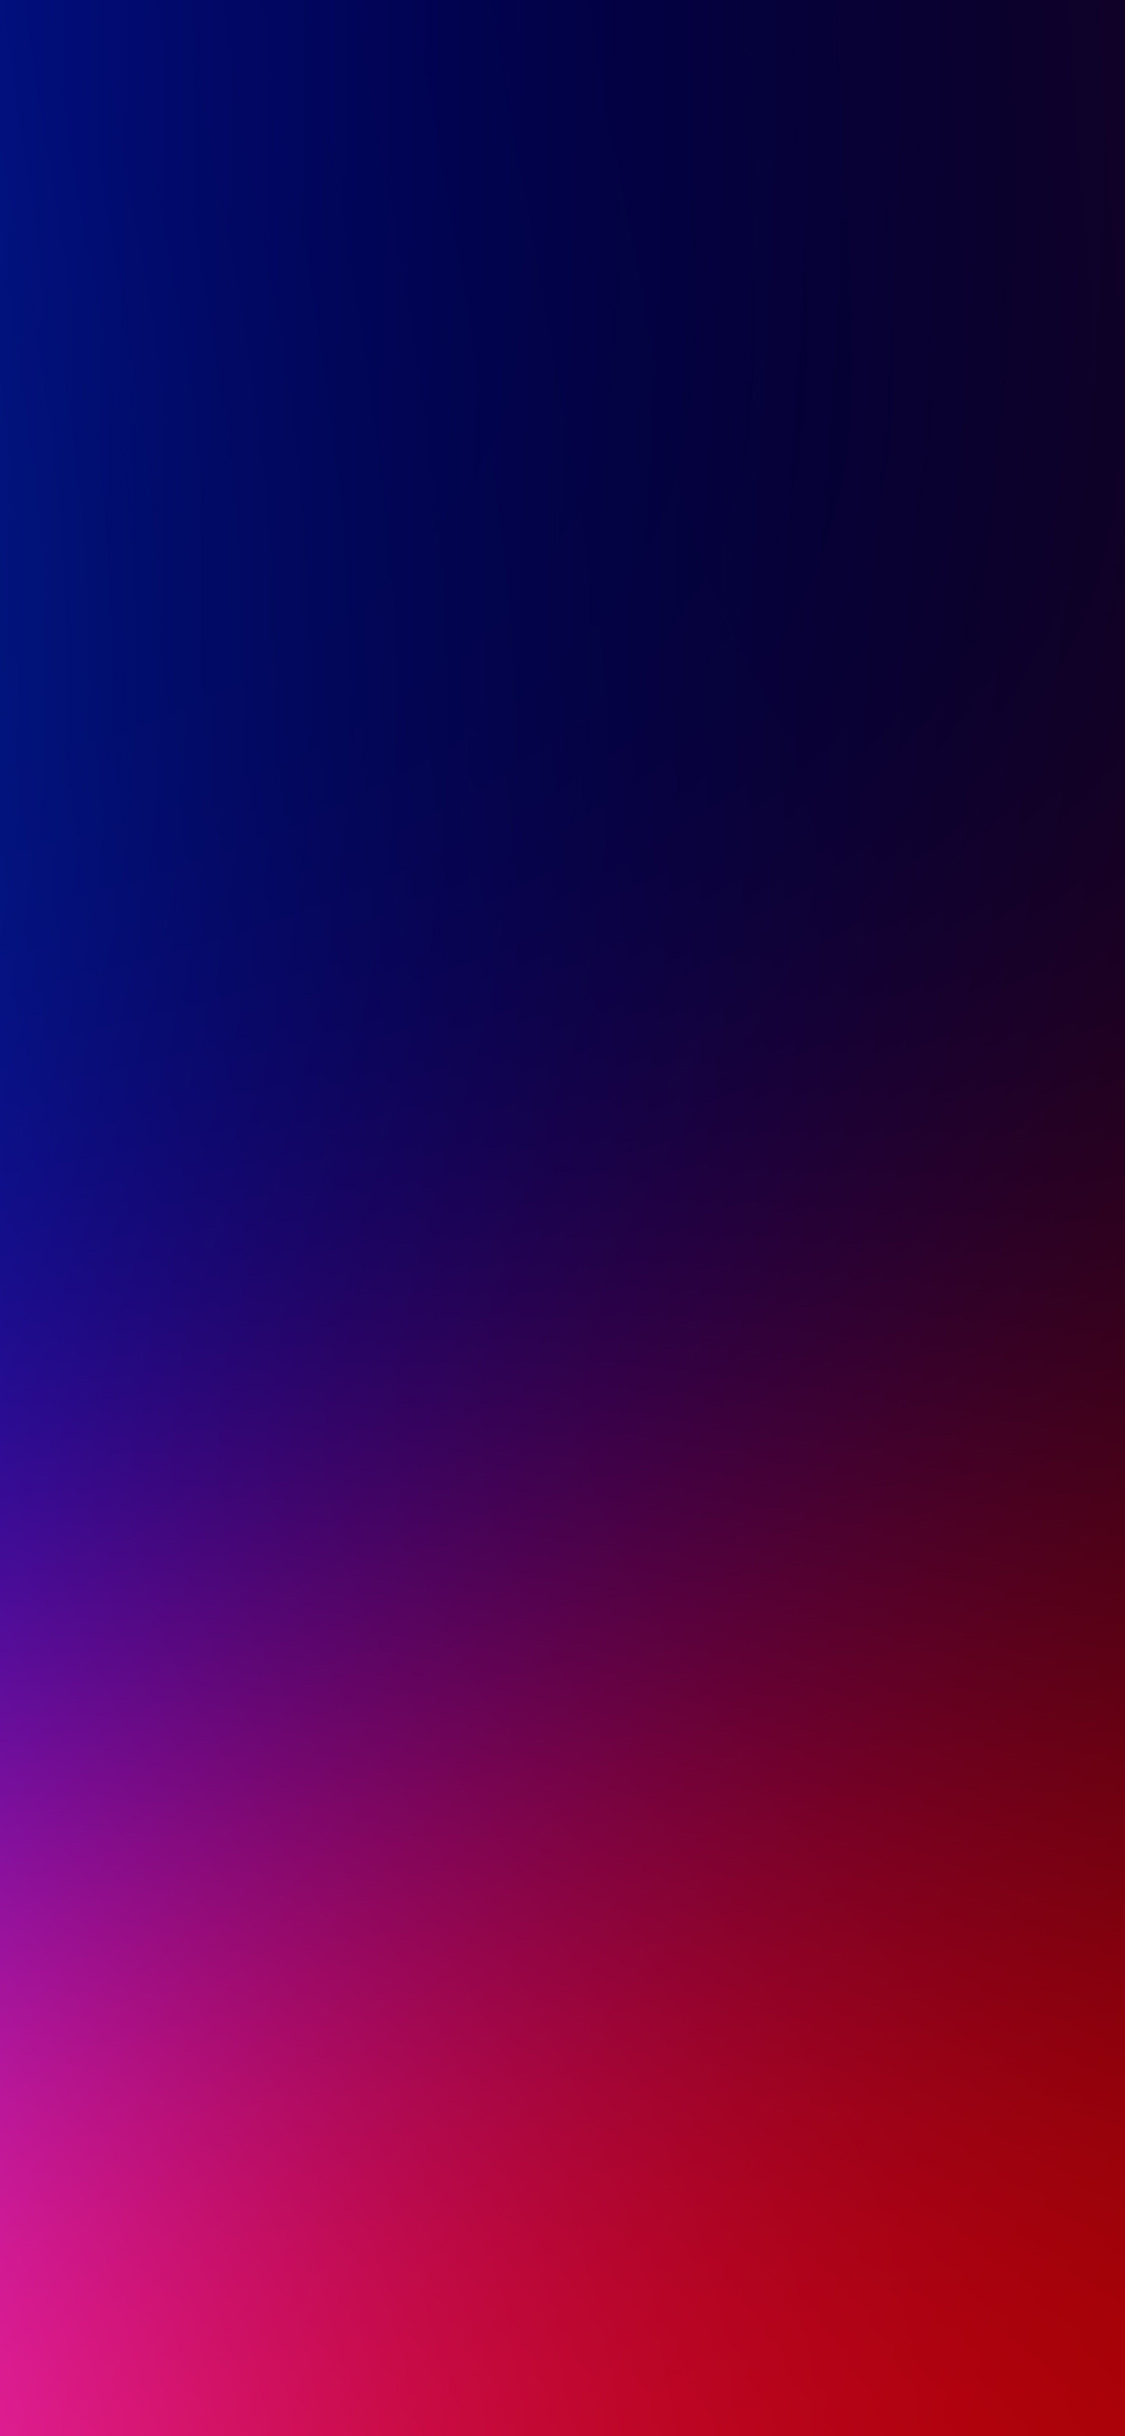 Blue Red Iphone X 2951806 Hd Wallpaper Backgrounds Download